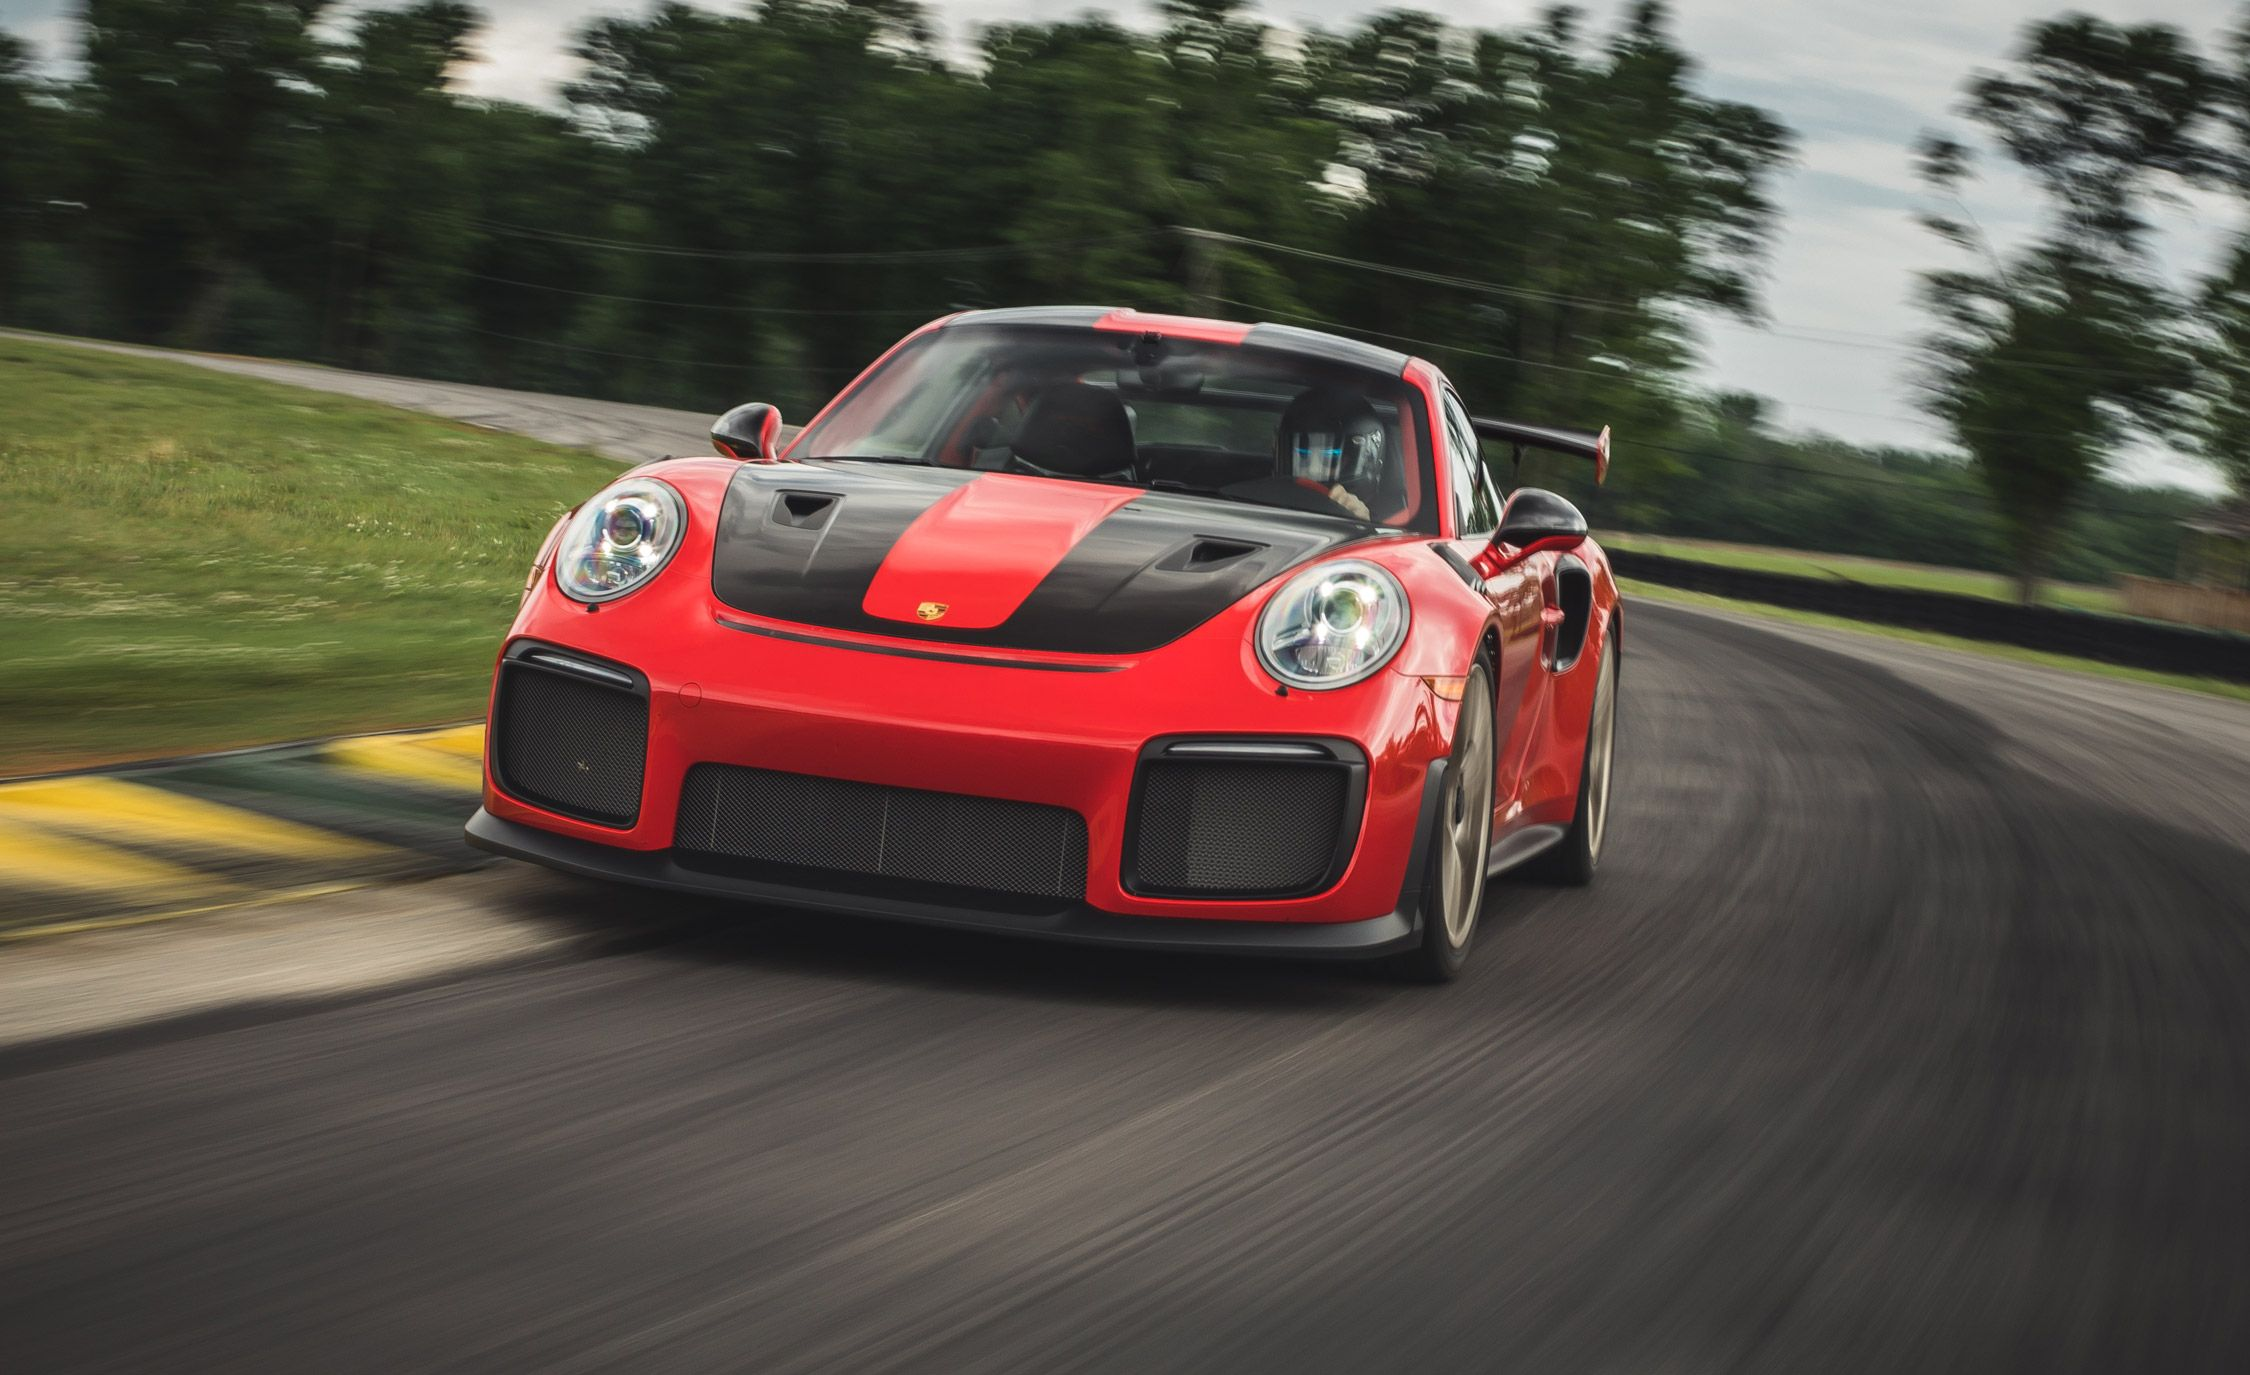 2018 Porsche 911 GT2 RS Weissach at Lightning Lap 2018